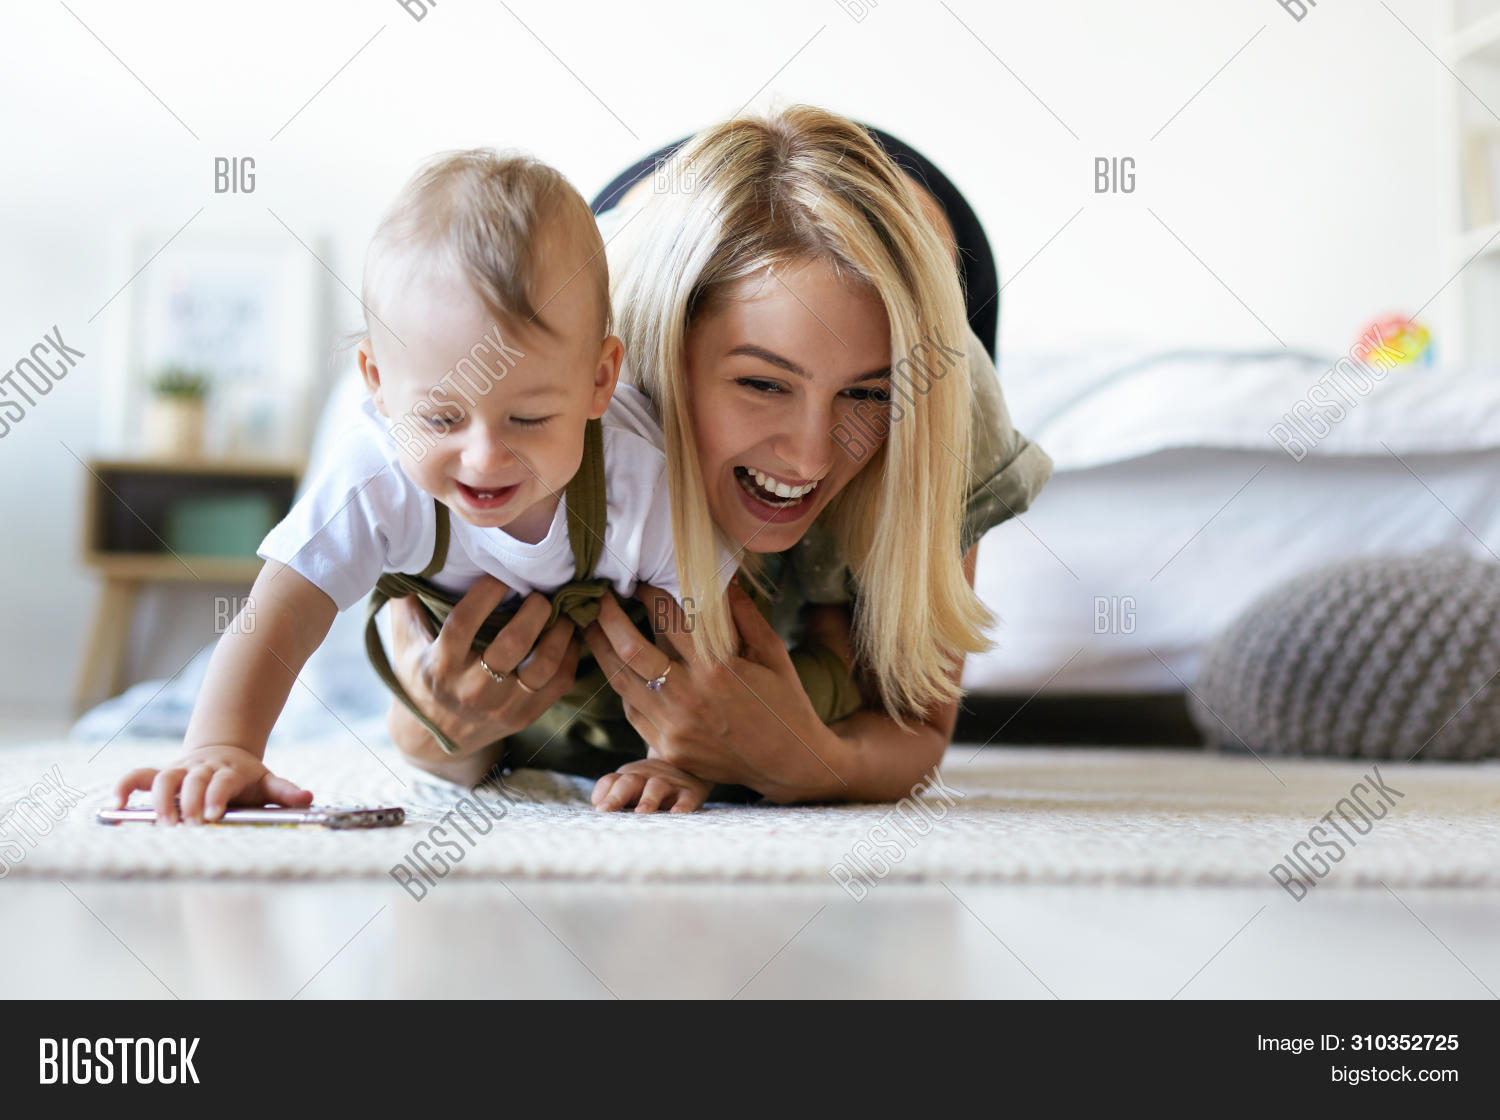 adult,baby,beautiful,care,casual,caucasian,cheerful,child,childhood,cute,daughter,family,female,floor,fun,girl,happiness,happy,healthy,home,house,indoor,infant,interior,joy,kid,laughing,leisure,lifestyle,little,love,mom,mother,motherhood,parent,parenthood,people,playful,playing,pretty,small,smiling,son,toddler,together,two,white,woman,young